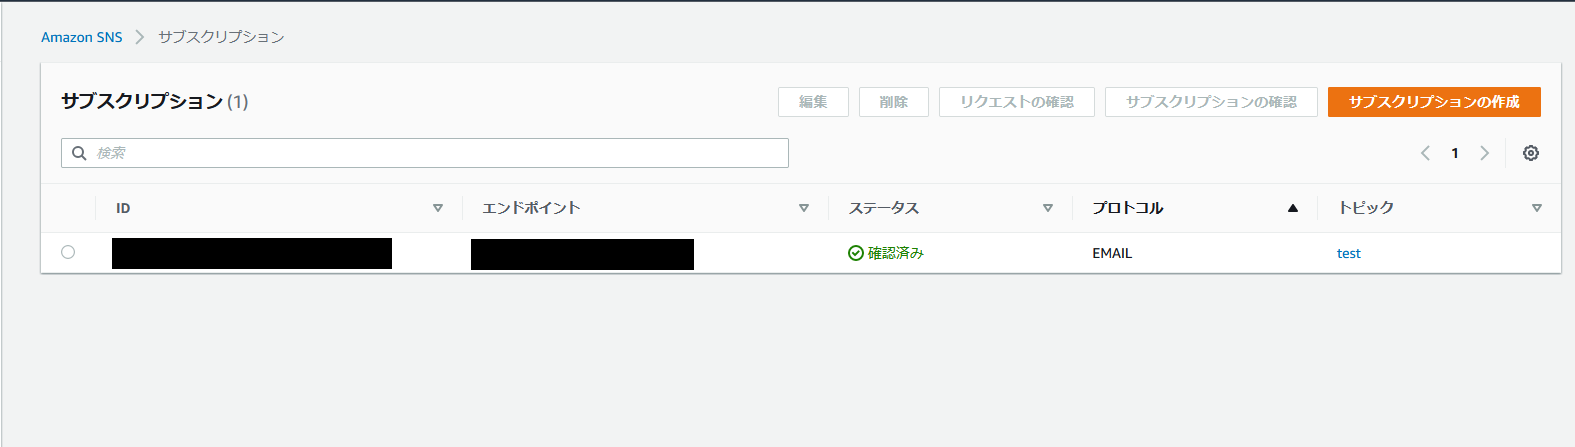 Amazon SNS、click here to unsubscribe.で削除済